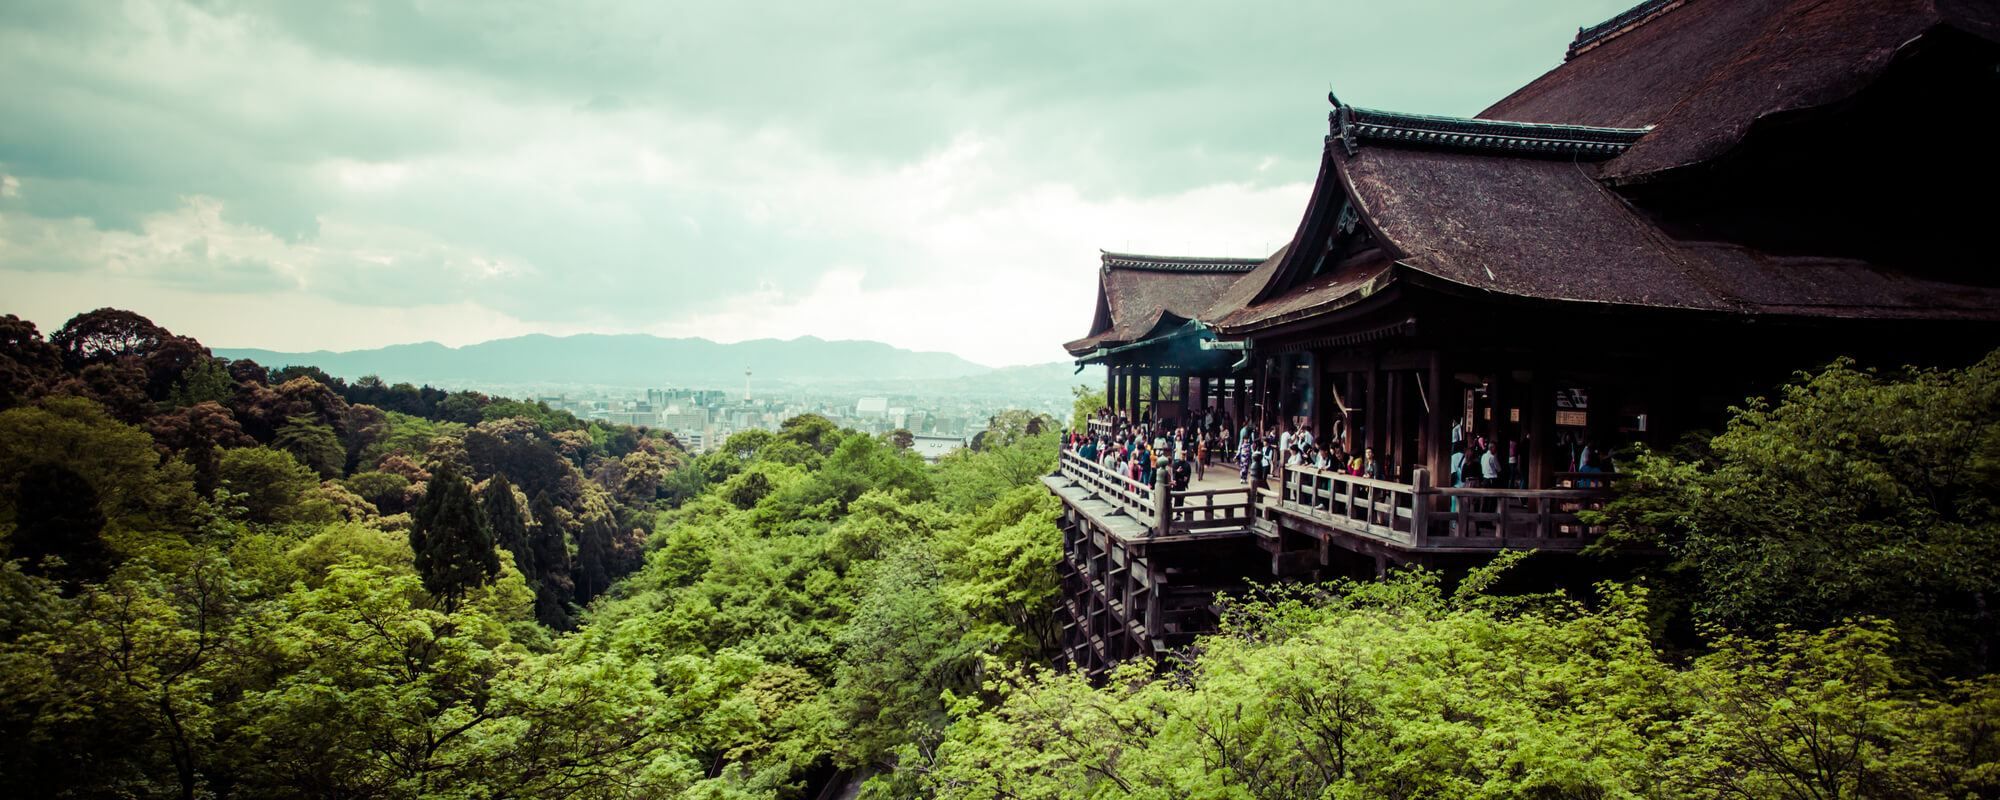 BNZ Asia Chair - an image of a large Asian style building in a lush green landscape.